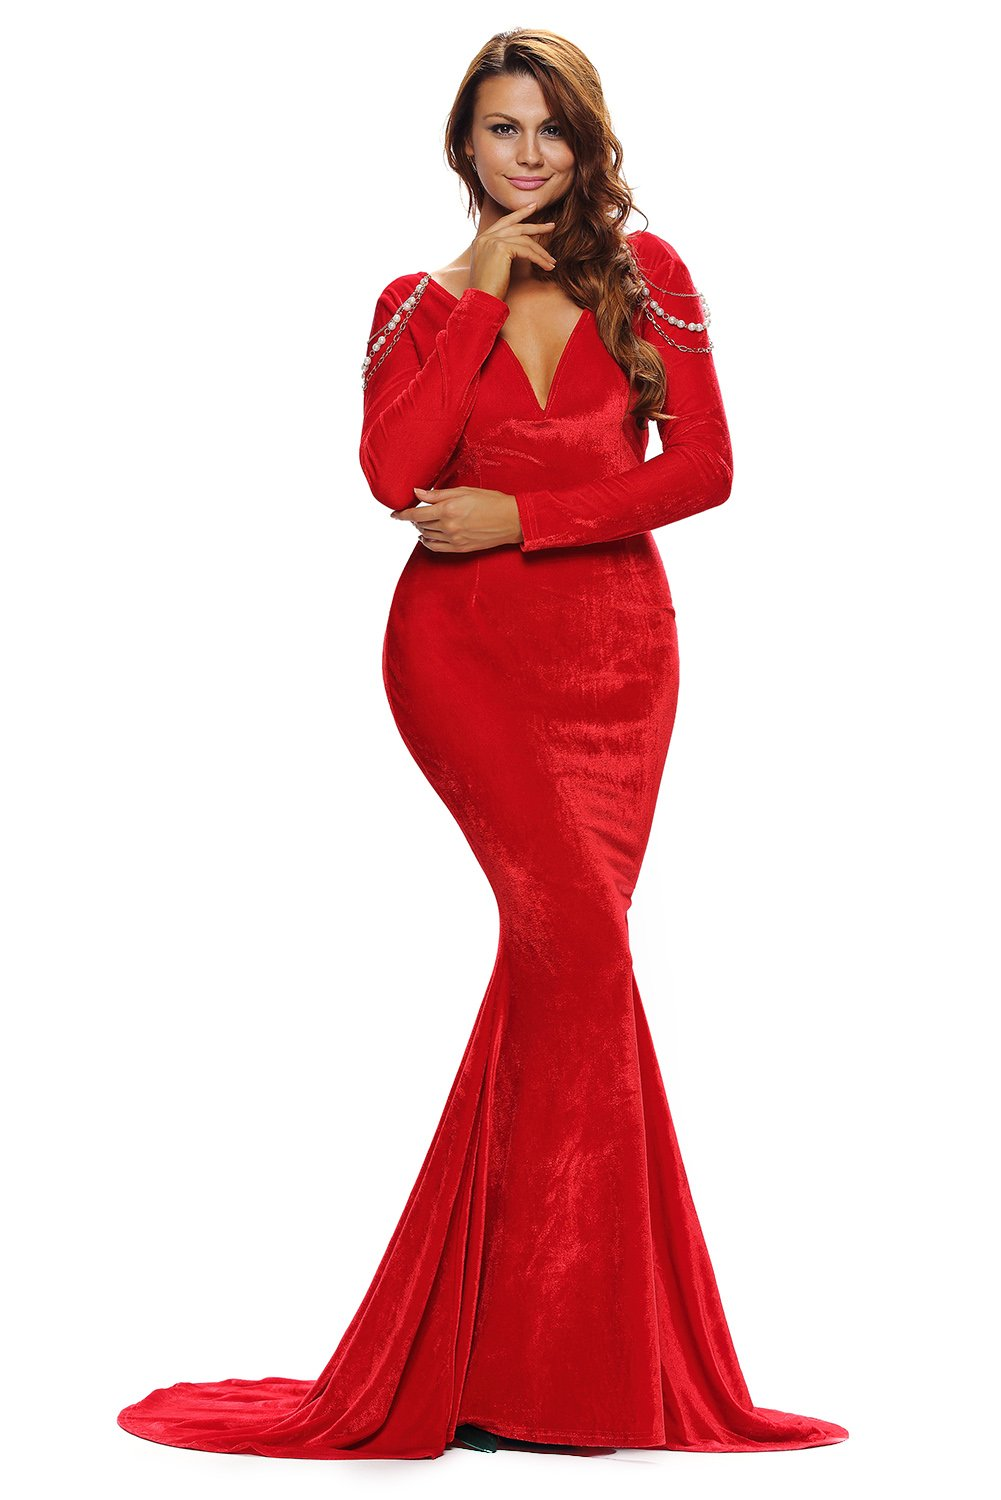 New ladies Red Velvet Long Sleeve Evening dress prom dress cocktail dress party wear gown size UK M 10-12: Amazon.co.uk: Sports & Outdoors